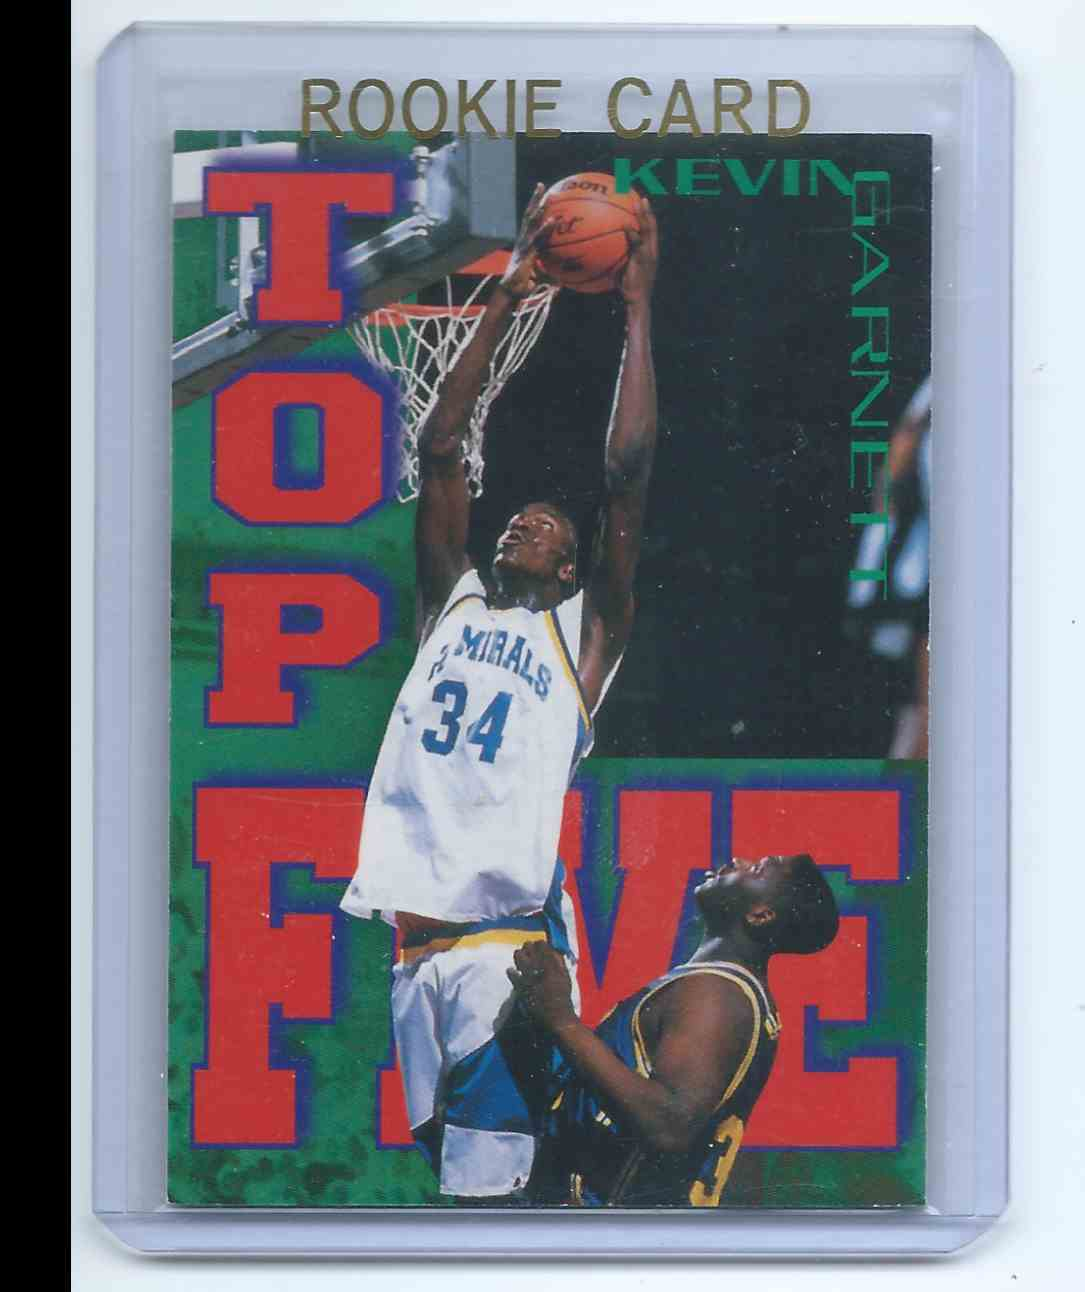 1995-96 Sports Heroes Signature Rookies Fame & Fortune - Top Five Kevin Garnett (Rc) Rookie Card #T5 card front image